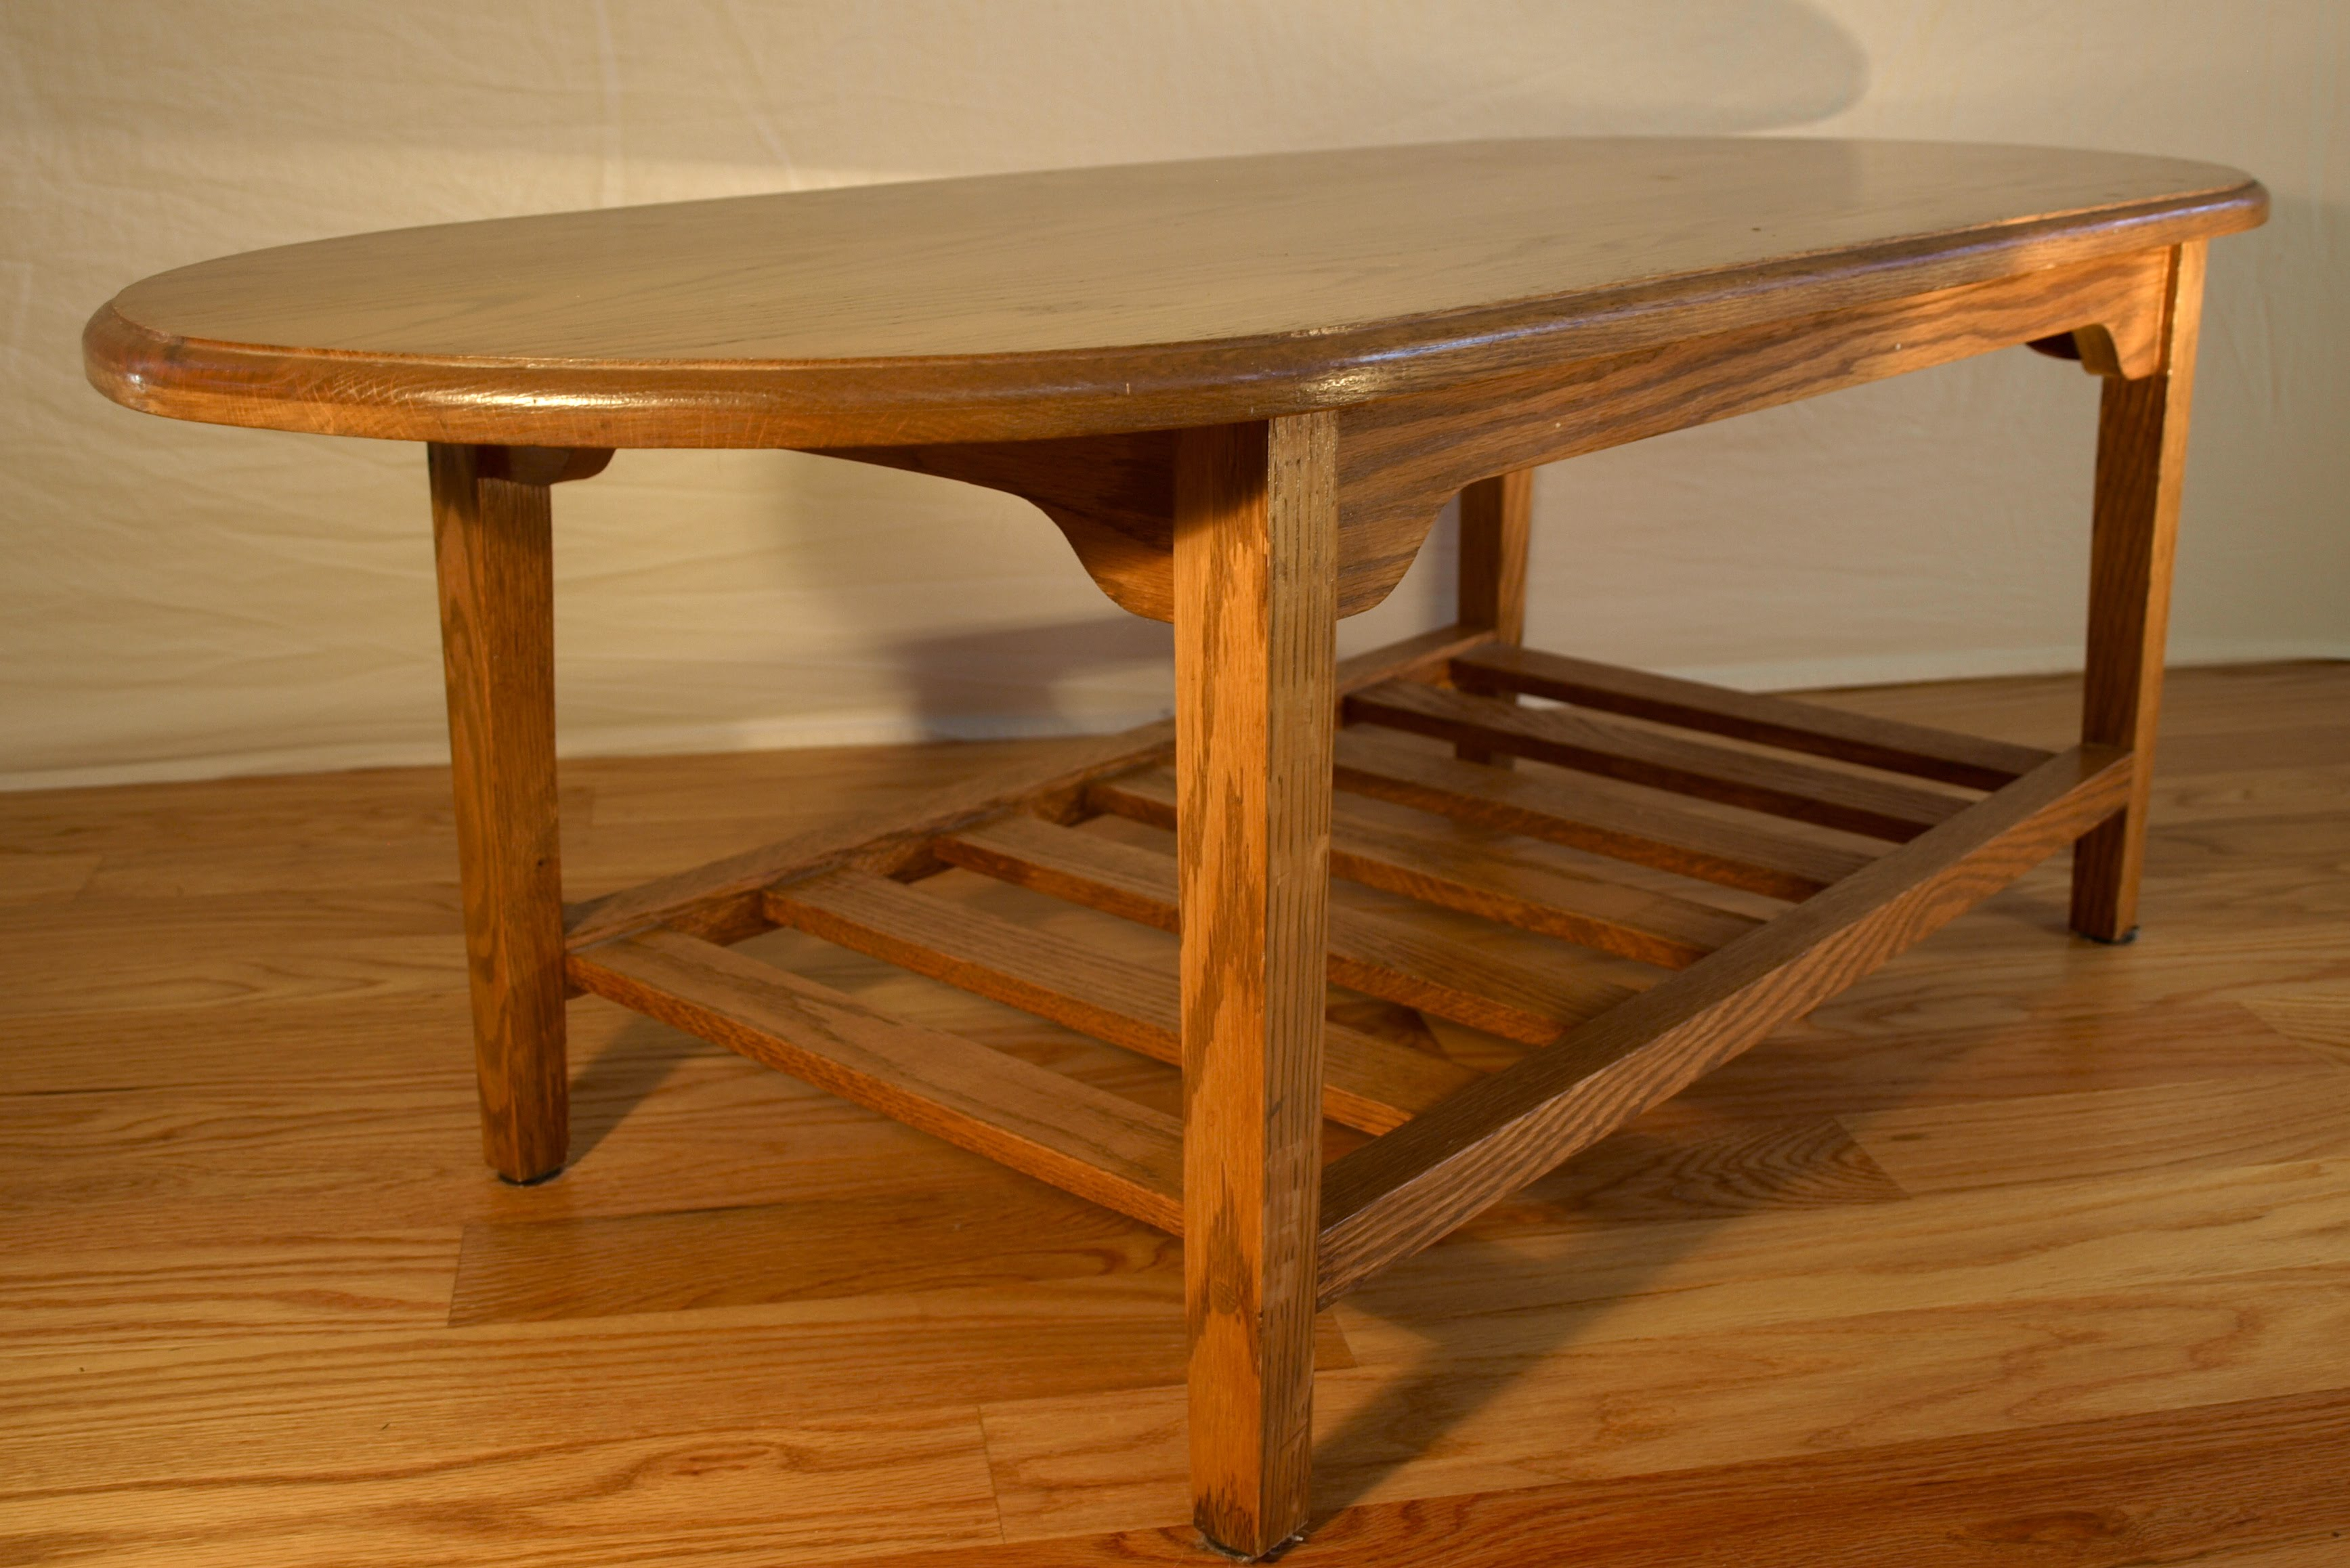 Marvelous Simple everyday tables made from red oak three were made oval coffee table square side table rectangular side table Each has a lattice style